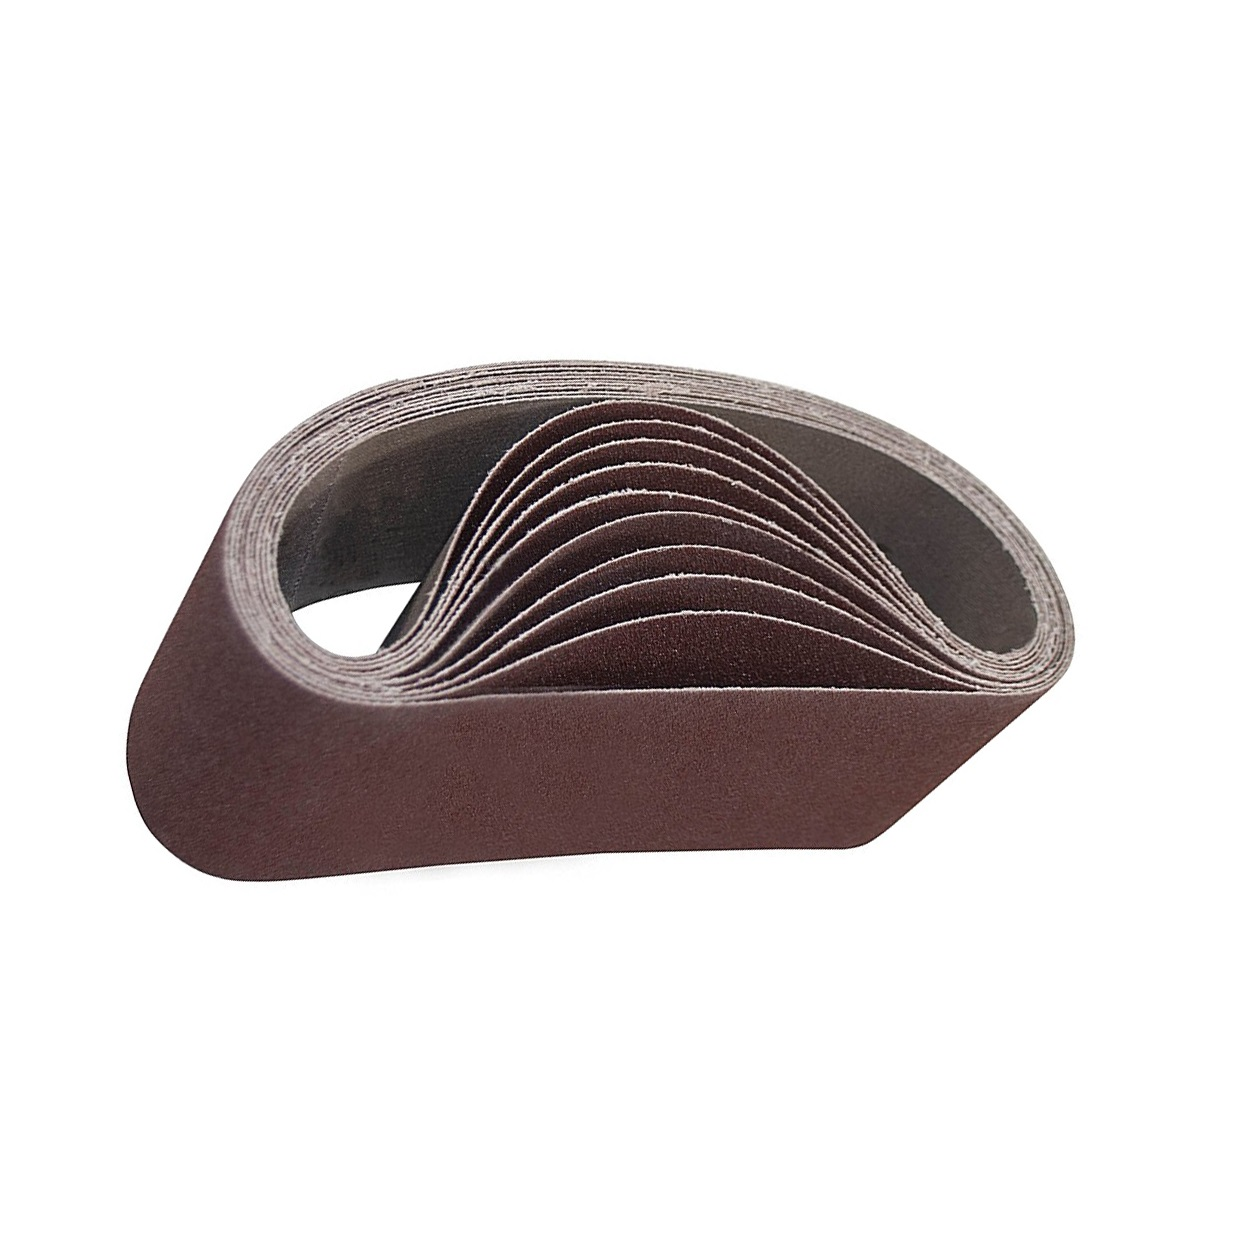 "2/"" x 72/"" Inch 600 Grit Aluminum Oxide Sanding Belts for Metal or Wood 10 PACK"